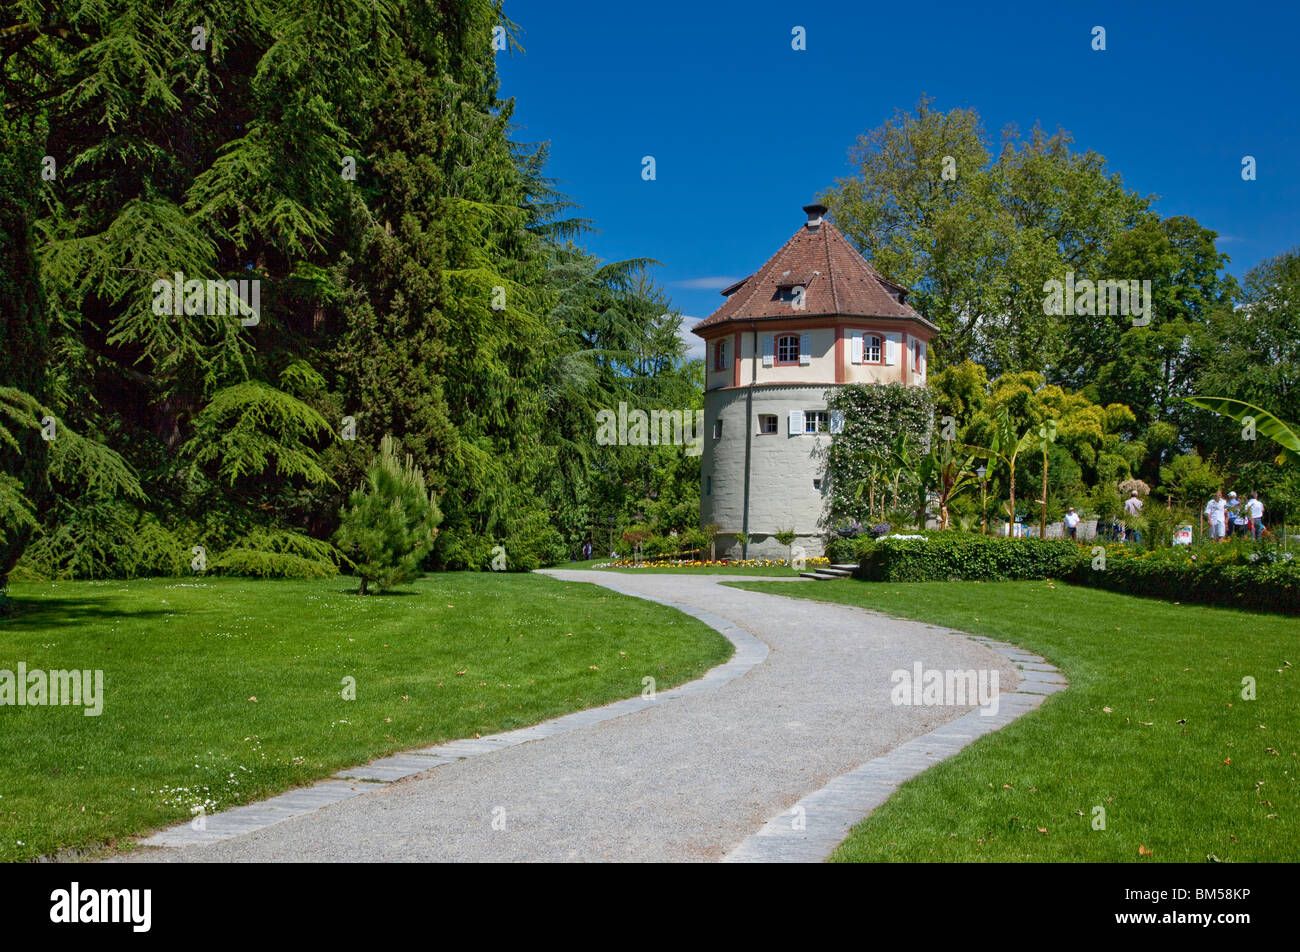 Pathway leading to small tower, Insel Mainau, Baden-Würtemberg, Germany - Stock Image